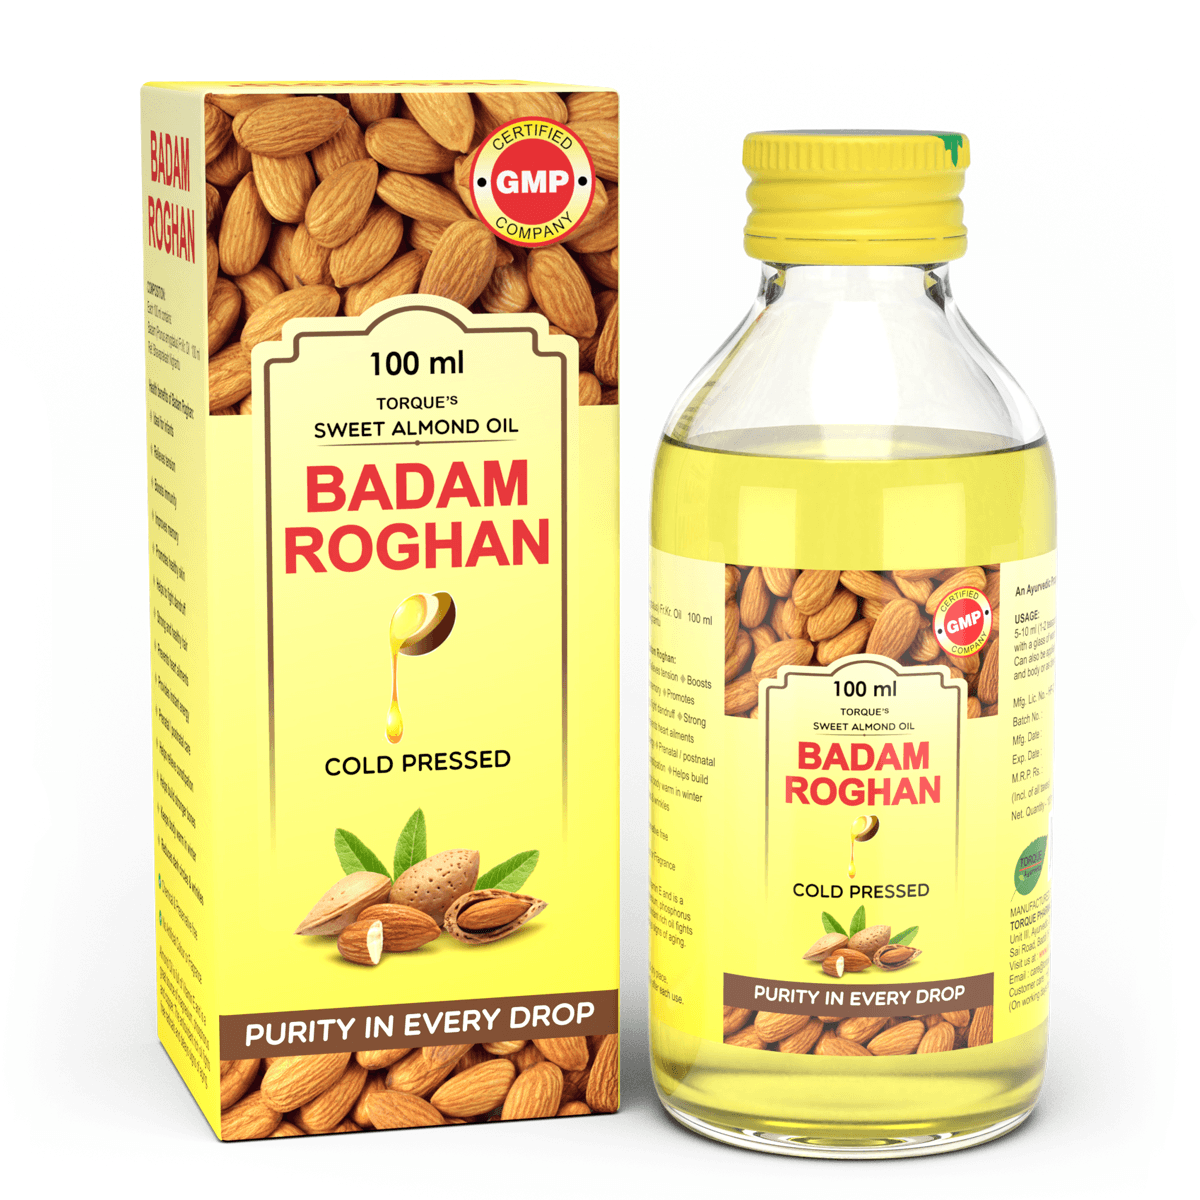 Badam Roghan - Best Ayurvedic Almond Oil in India for Adults